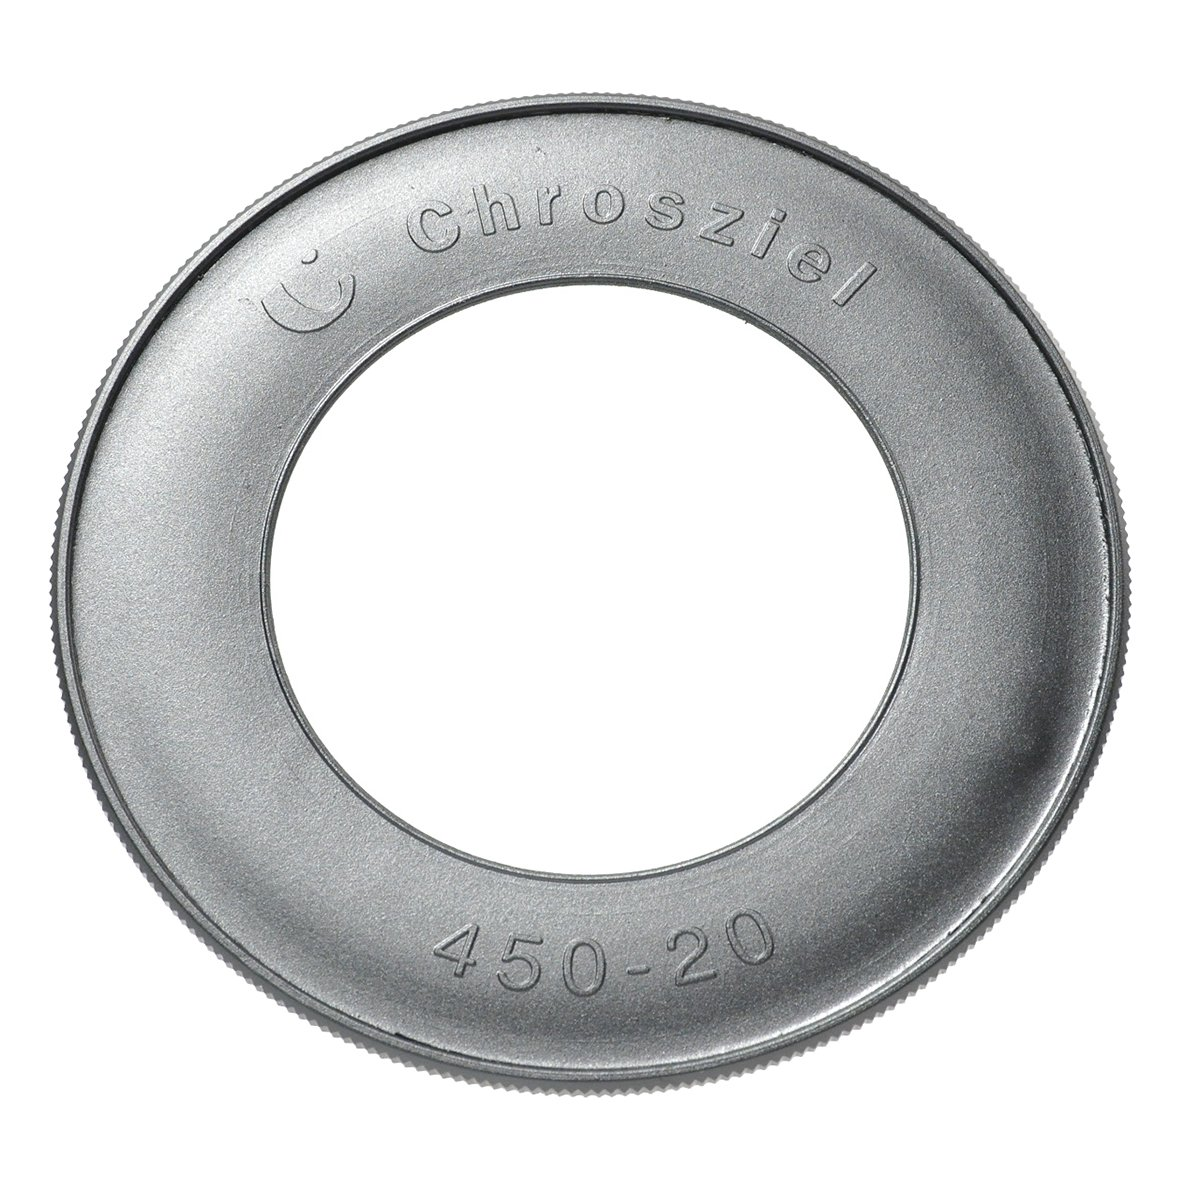 CHROSZIEL C-450-20 Flexi-Ring 110mm for Lenses of 75mm to 98mm Diameter, Use with 450-R21 Matte Box (Black)